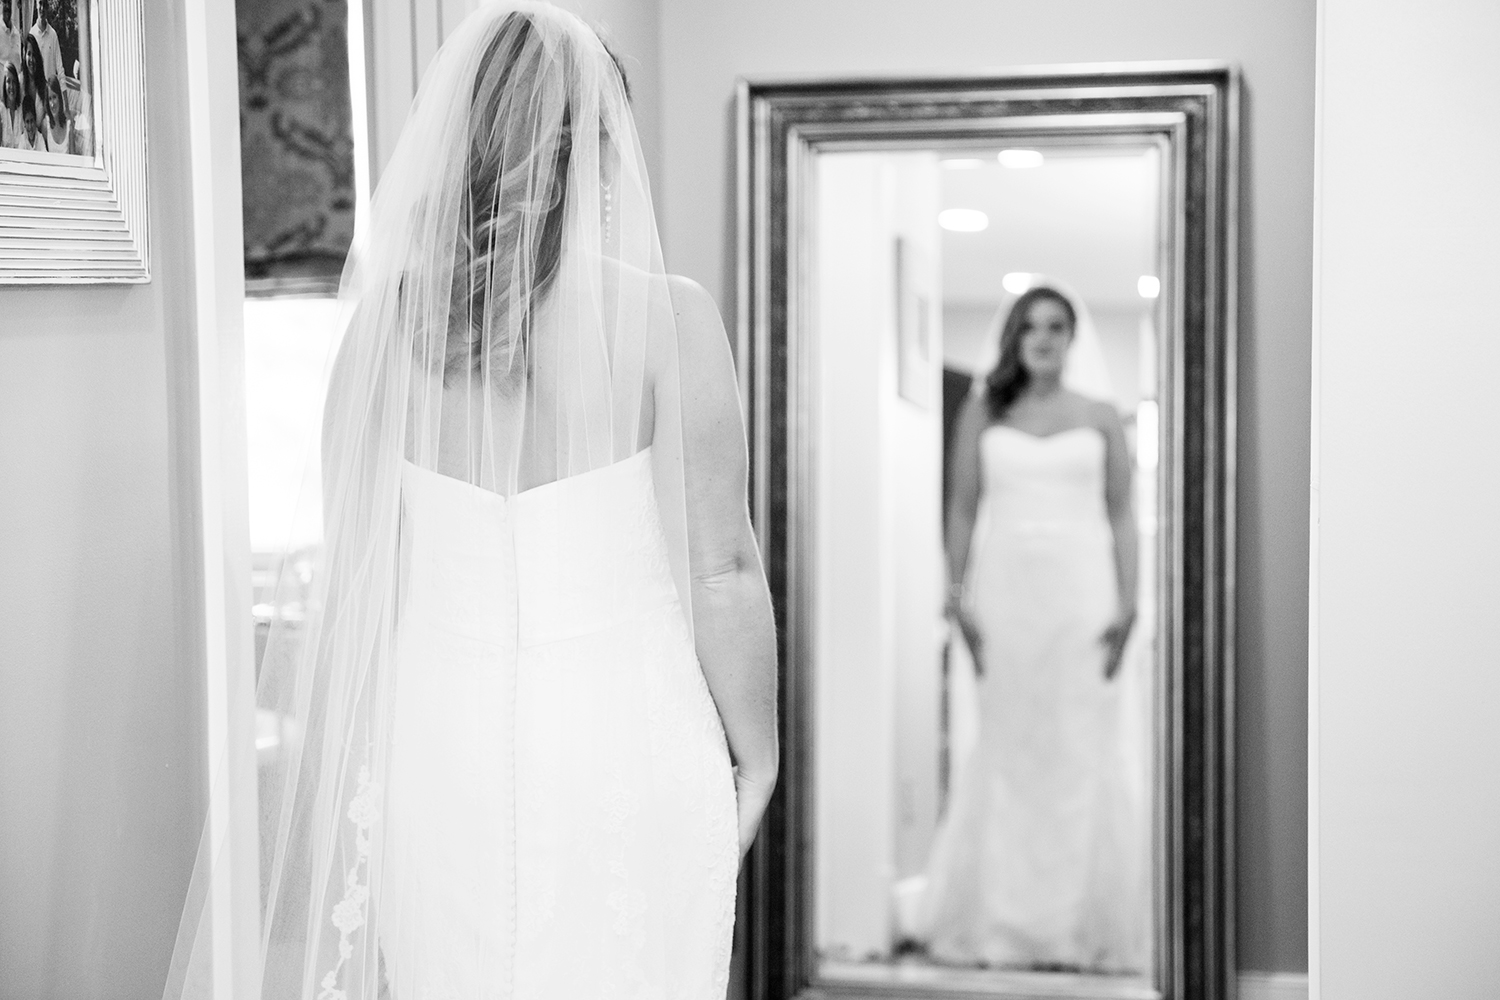 5 Reasons You Should Have Bridal Portraits Taken - Image Property of www.j-dphoto.com